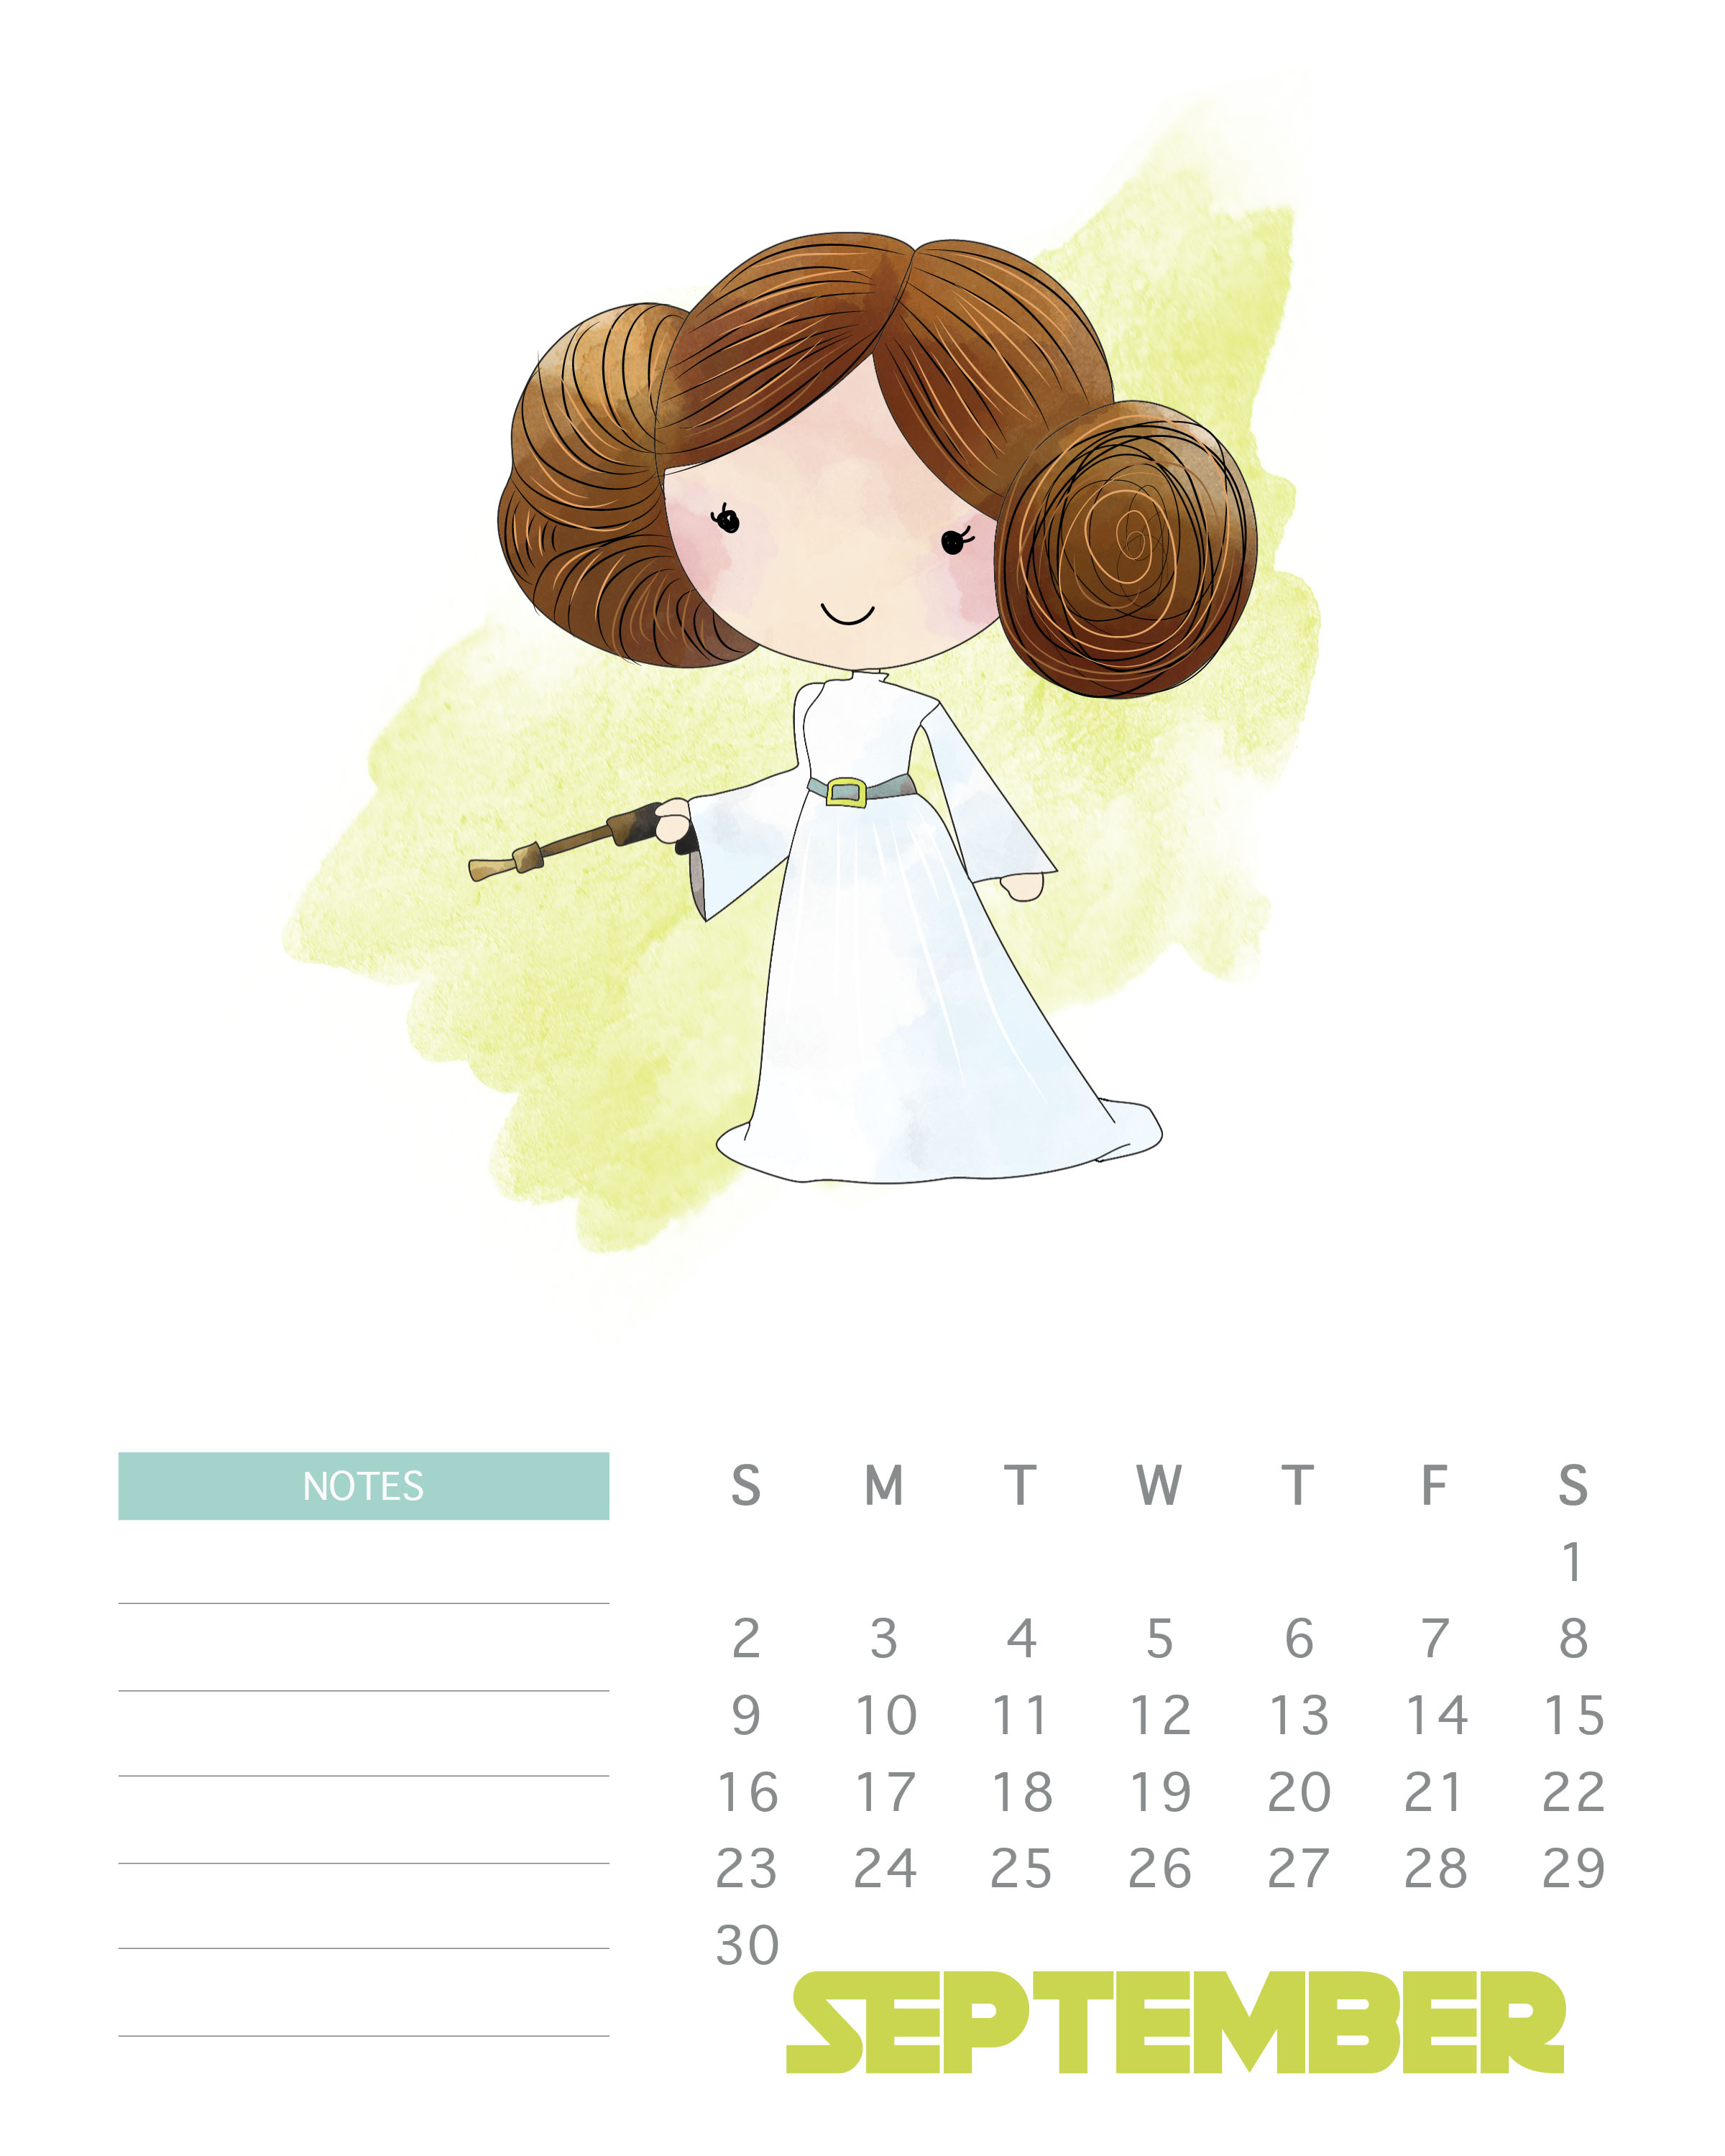 2018 Star Wars Monthly Calendar | Max Calendars with Star Wars Calendar Printable